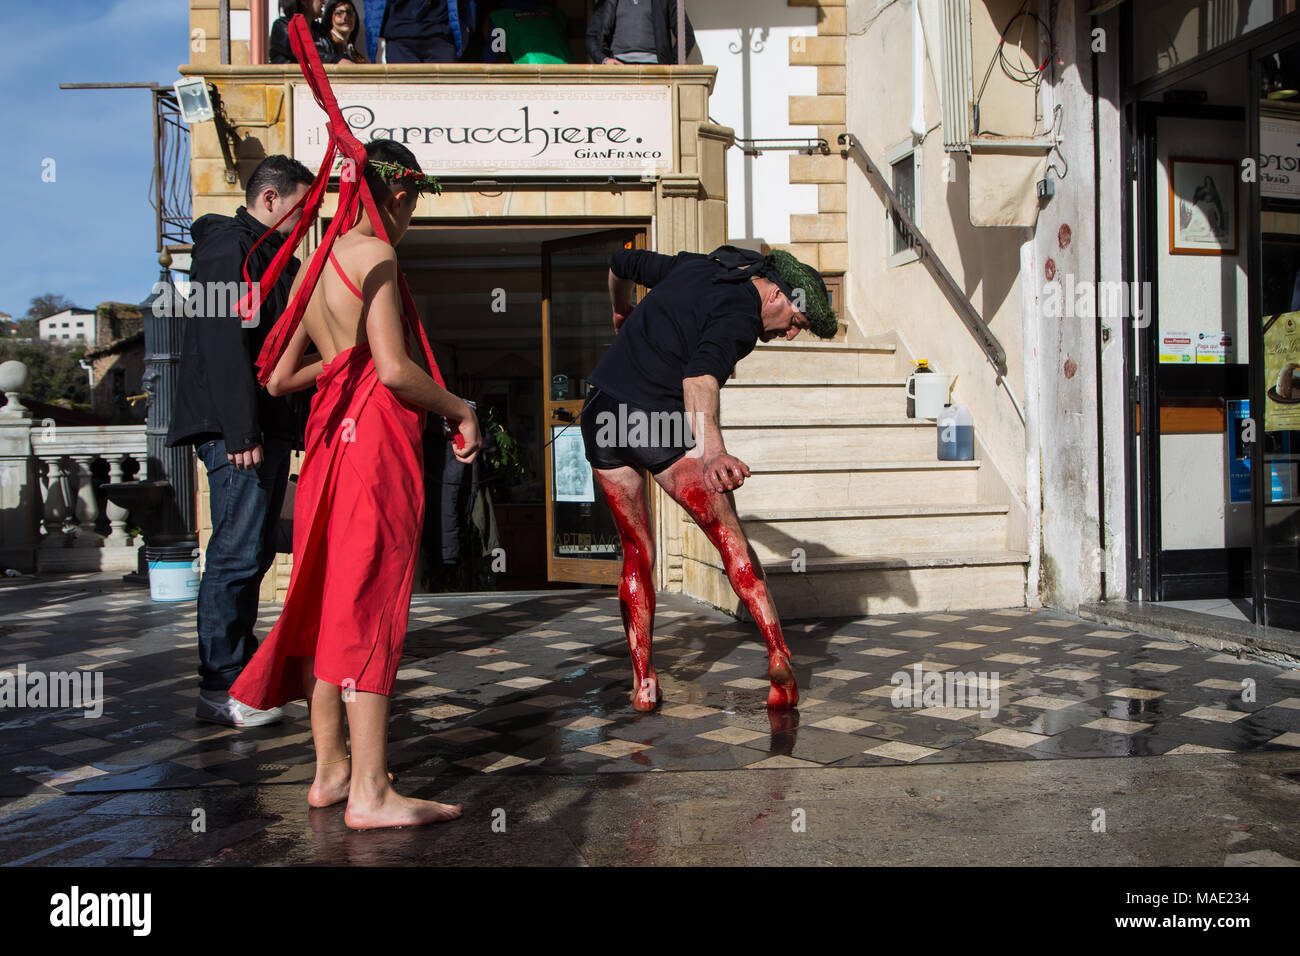 "Nocera Terinese, Italy, 31st March 2018. A ""Vattente"" performs his self inflicted torture on the town square. The ""Vattenti"" wear black shorts and only a black shirt as a sign of mourning for the crucifixion of Jesus Christ. Credit: Piero Castellano/Alamy Live News - Stock Image"